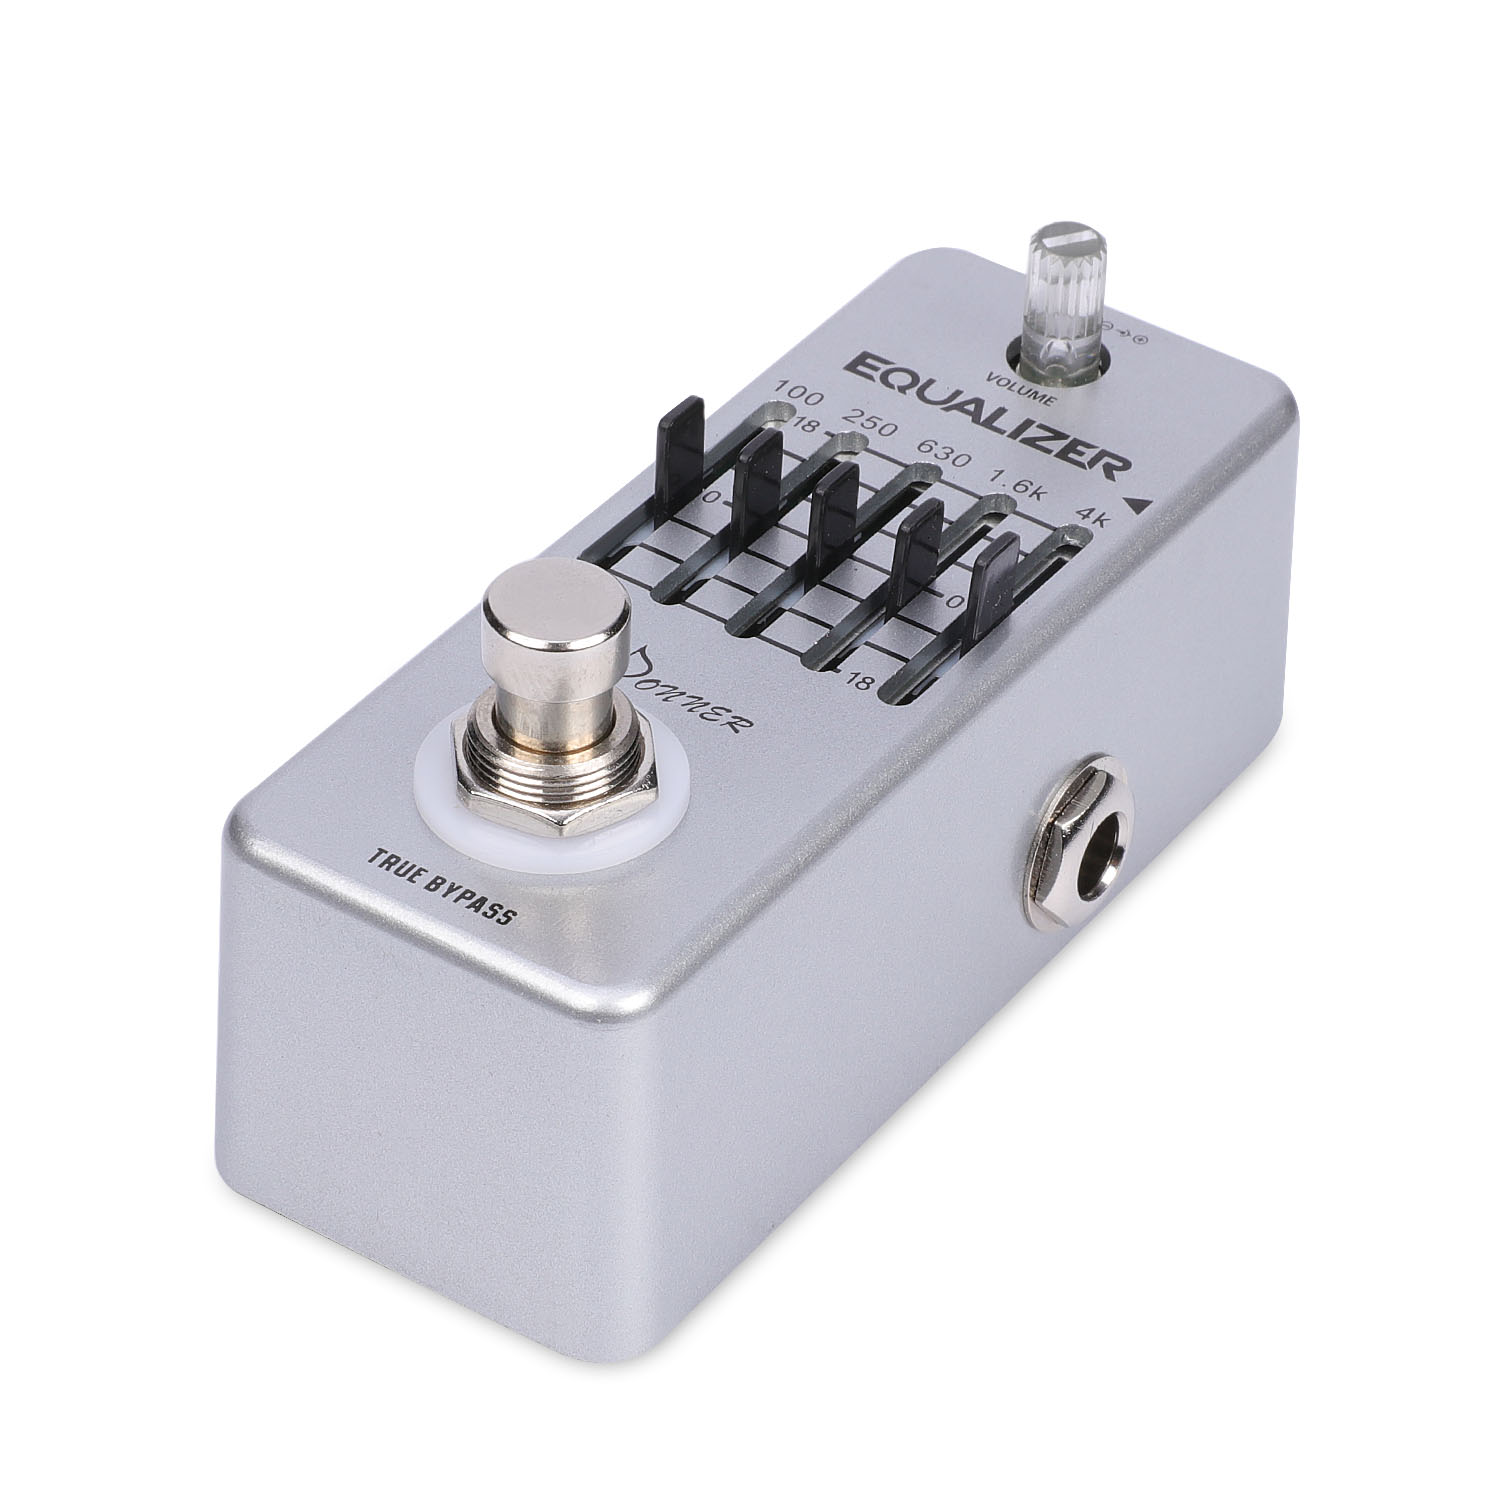 donner equalizer pedal 5 band graphic eq guitar effect pedal ebay